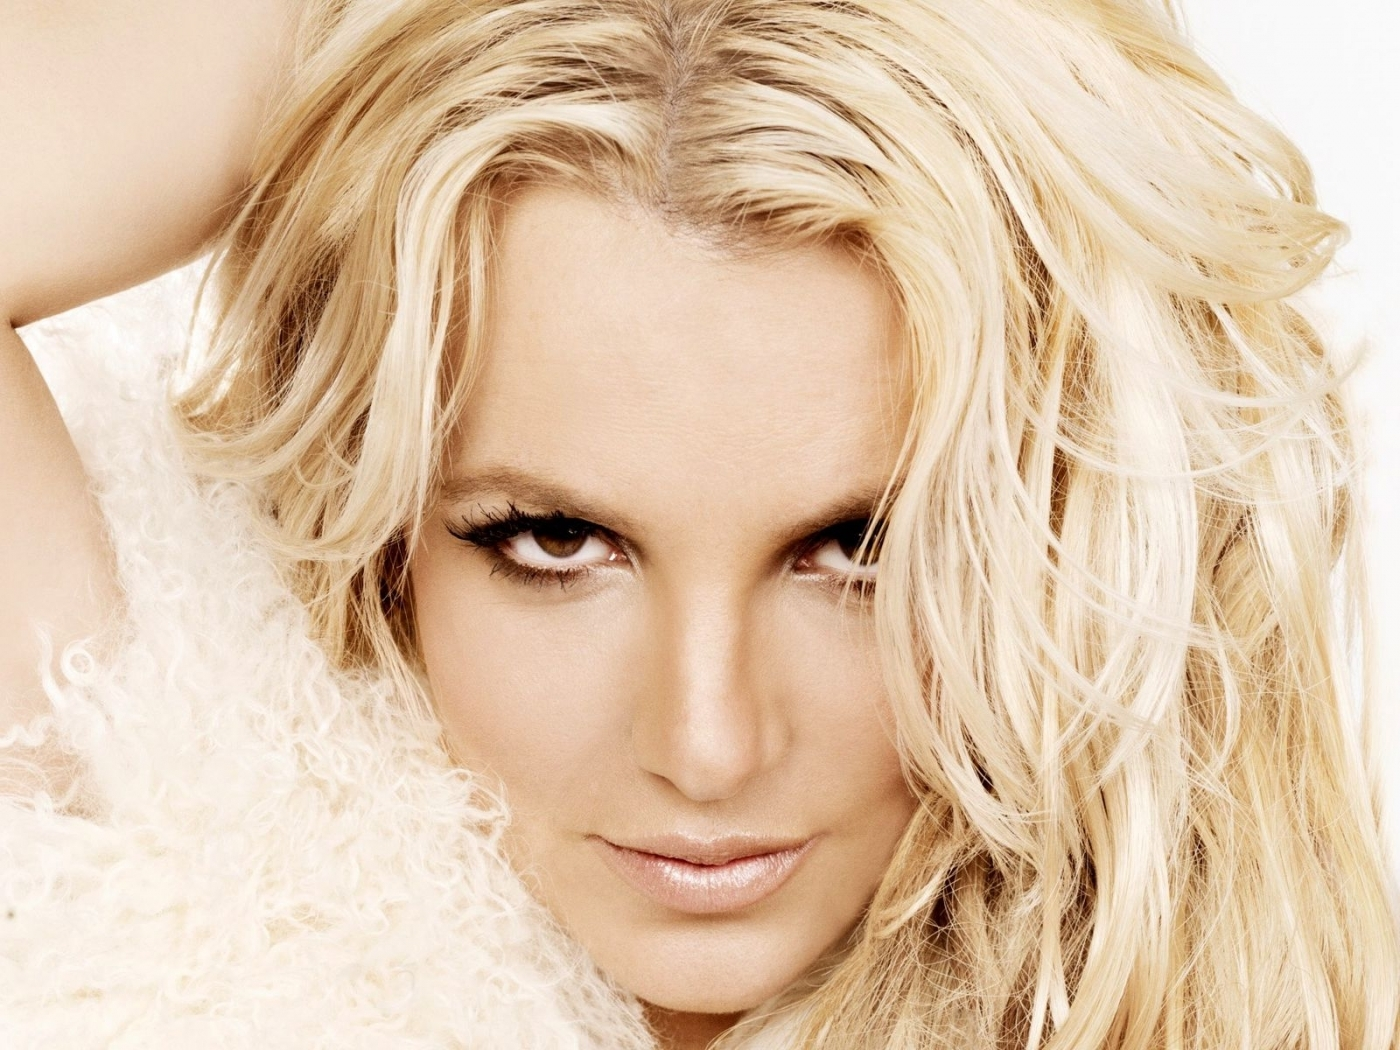 42557 download wallpaper People, Britney Spears screensavers and pictures for free